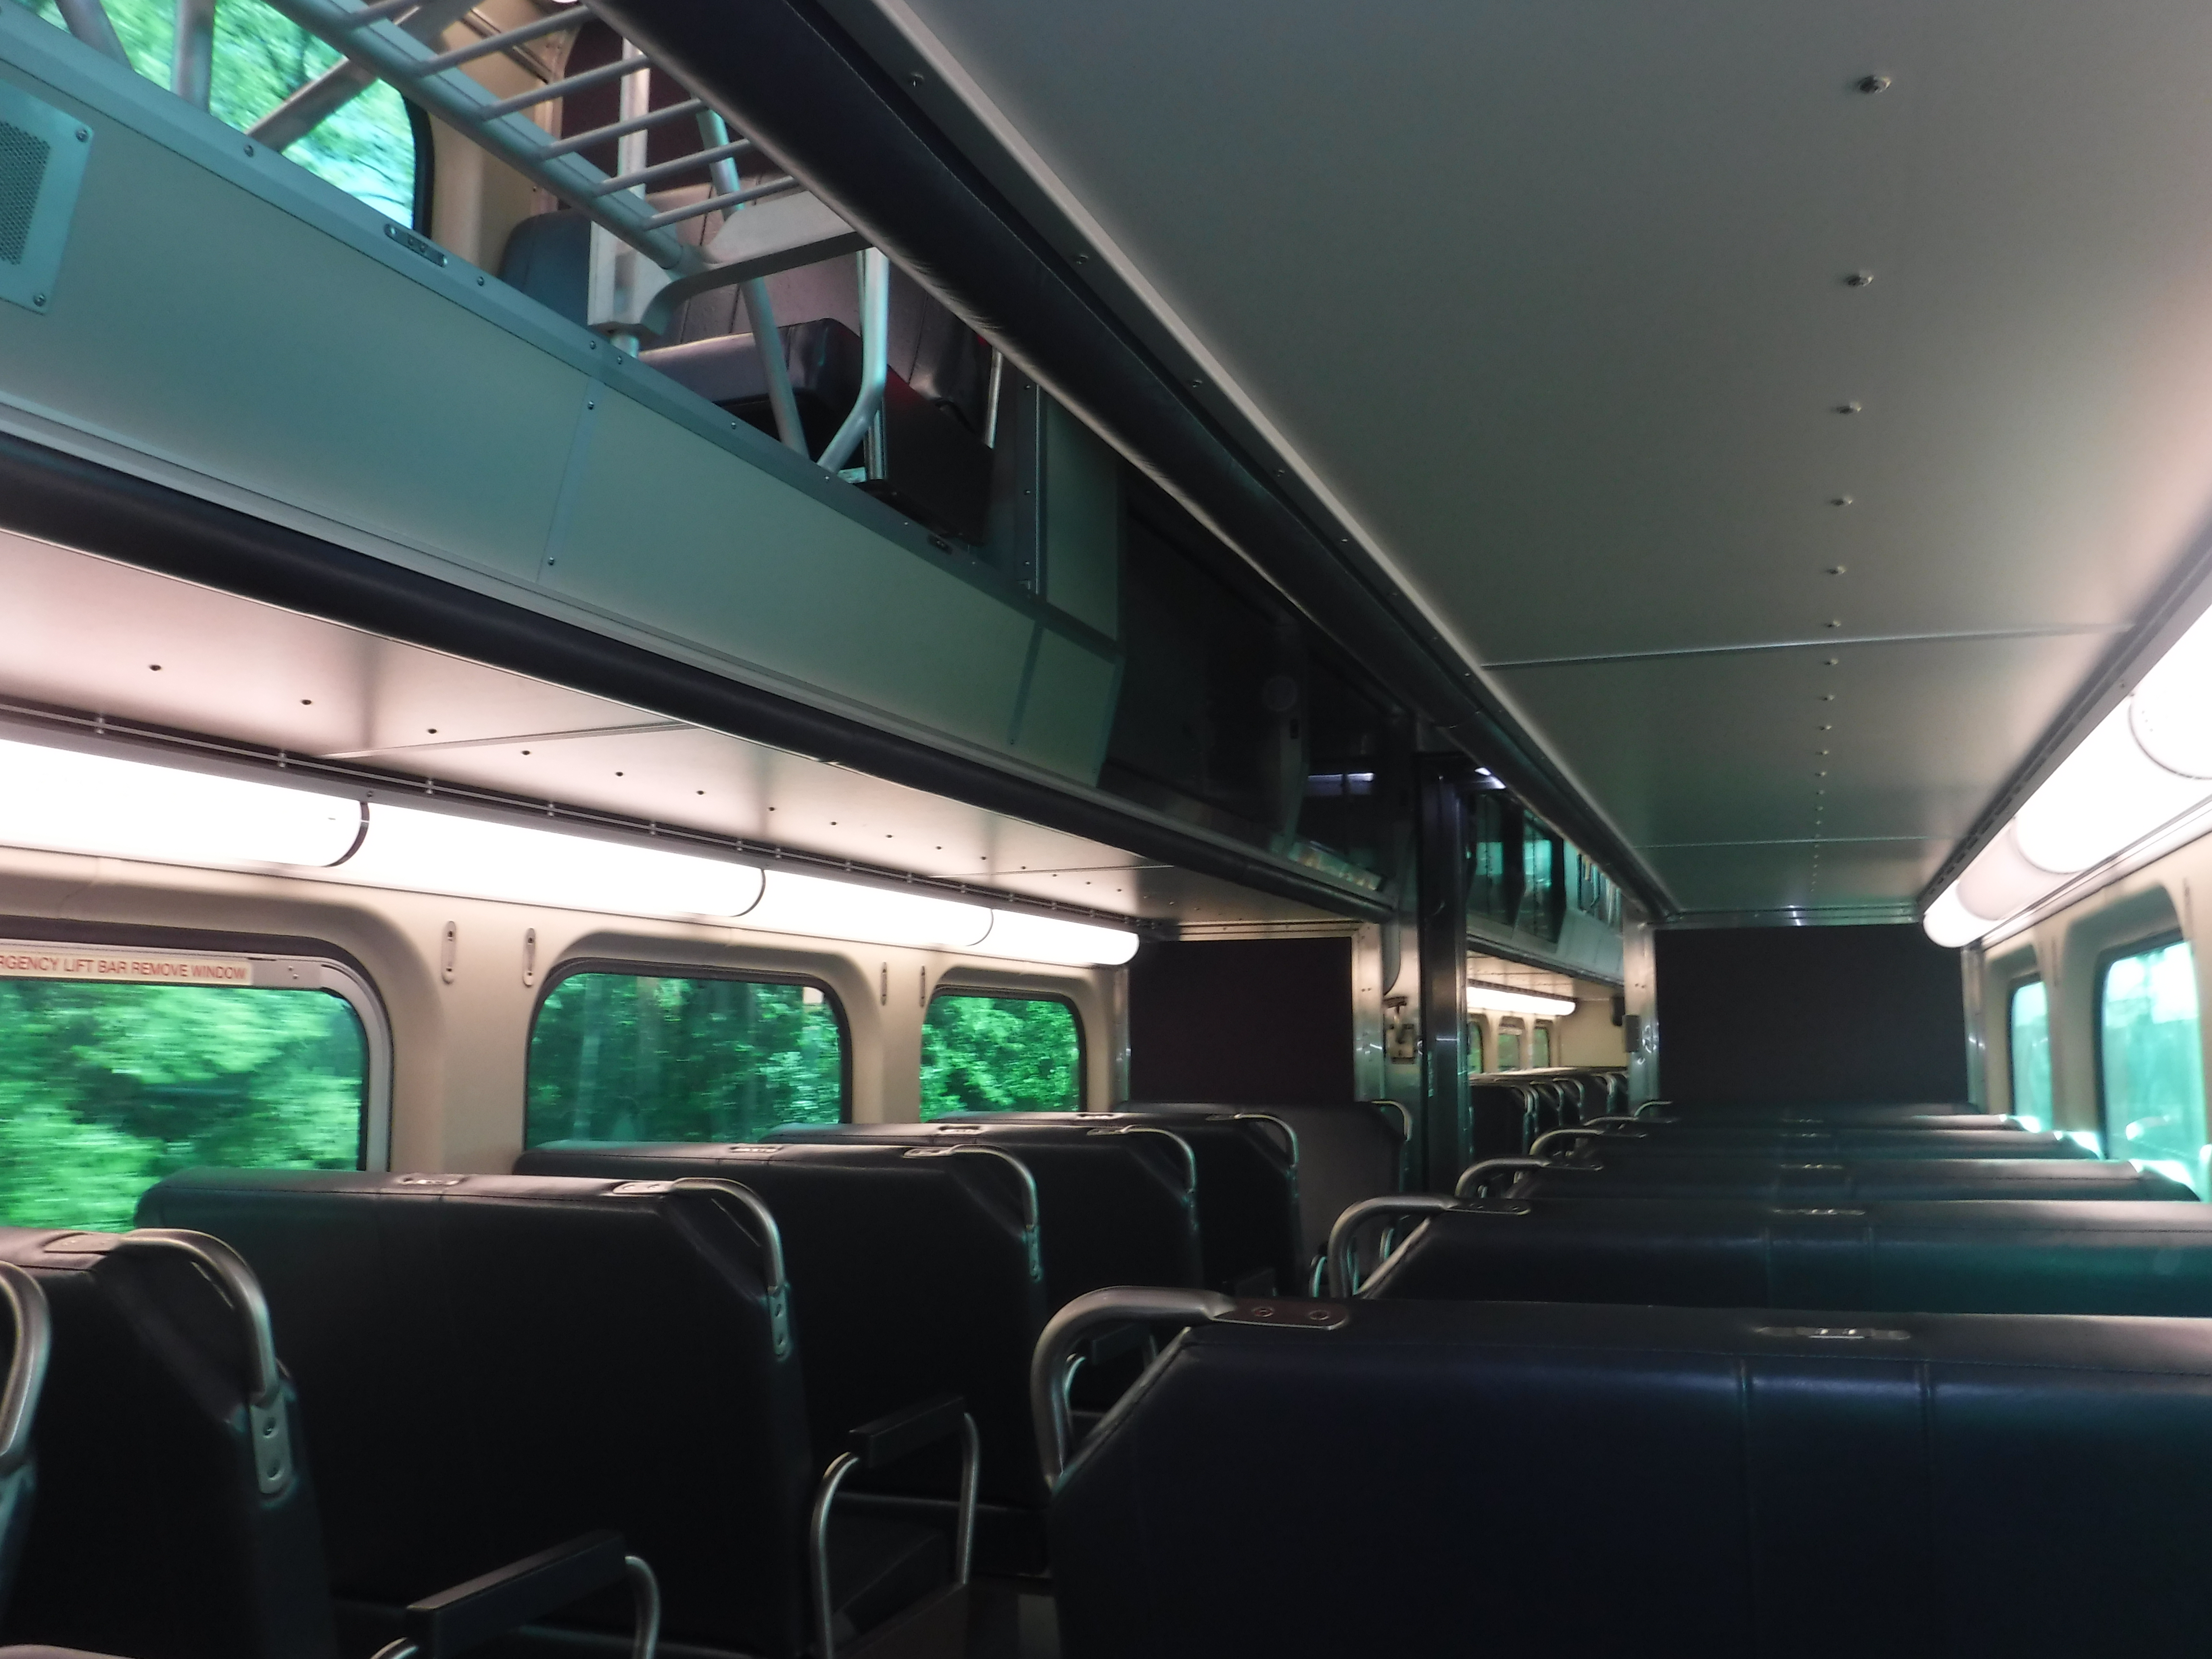 metra proposes major south side service overhaul - chronicle media